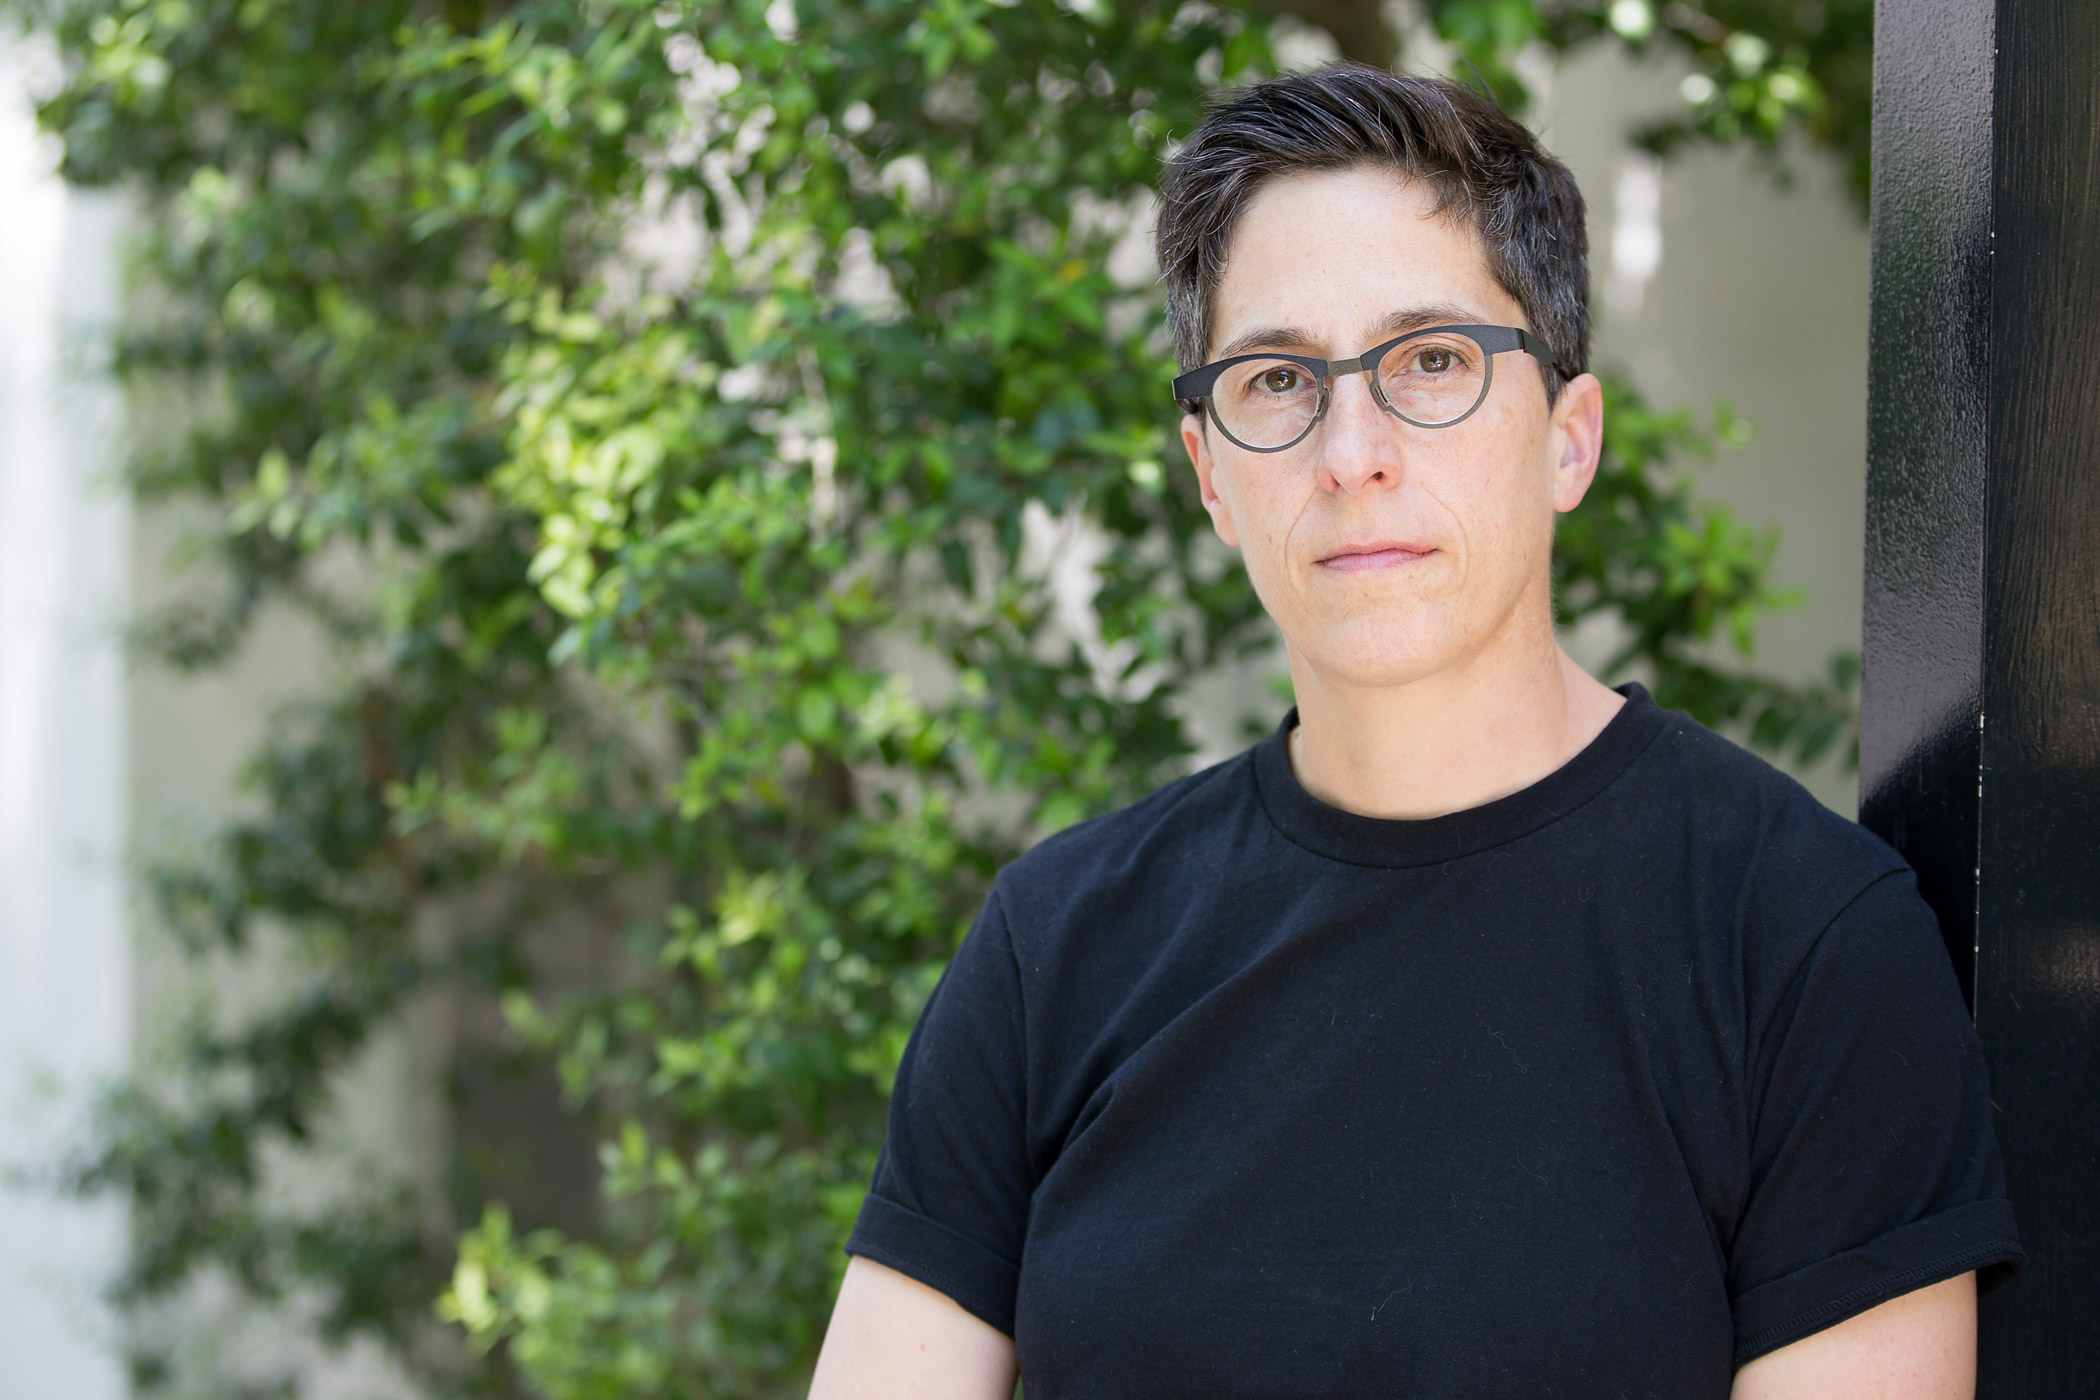 Alison Bechdel at a rehearsal for the musical Fun Home on April 21, 2014 in Charleston, SC.